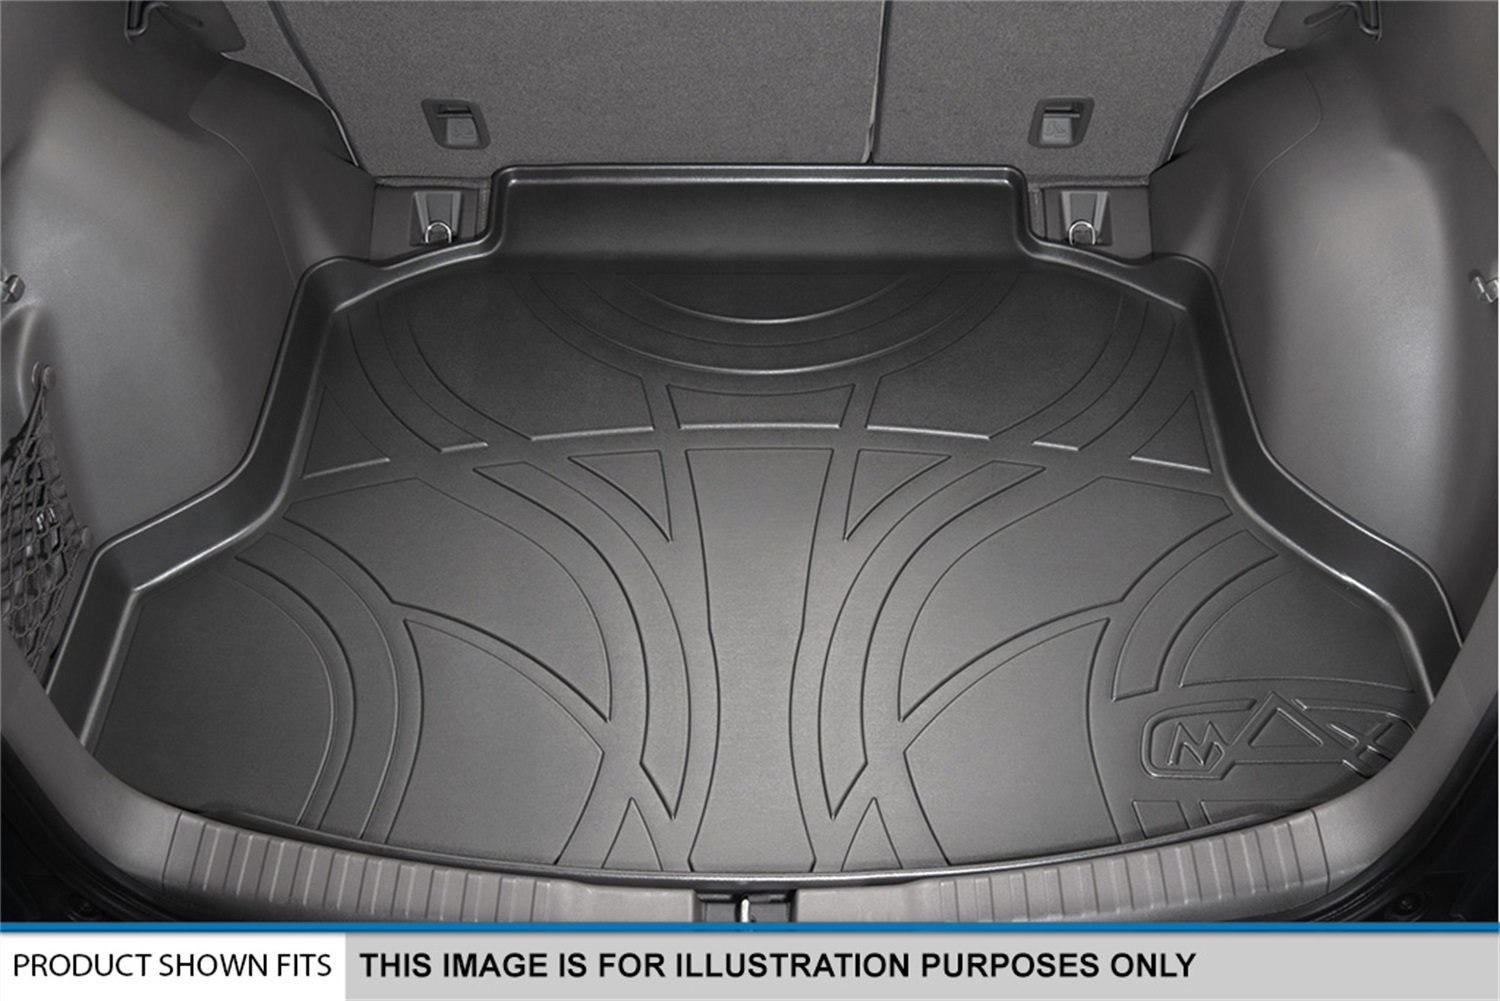 MAX LINER D0191 All Weather Cargo Trunk Liner Floor Mat Behind 2nd Row Black for 2016-2019 Kia Sorento 7-Passenger Model Only